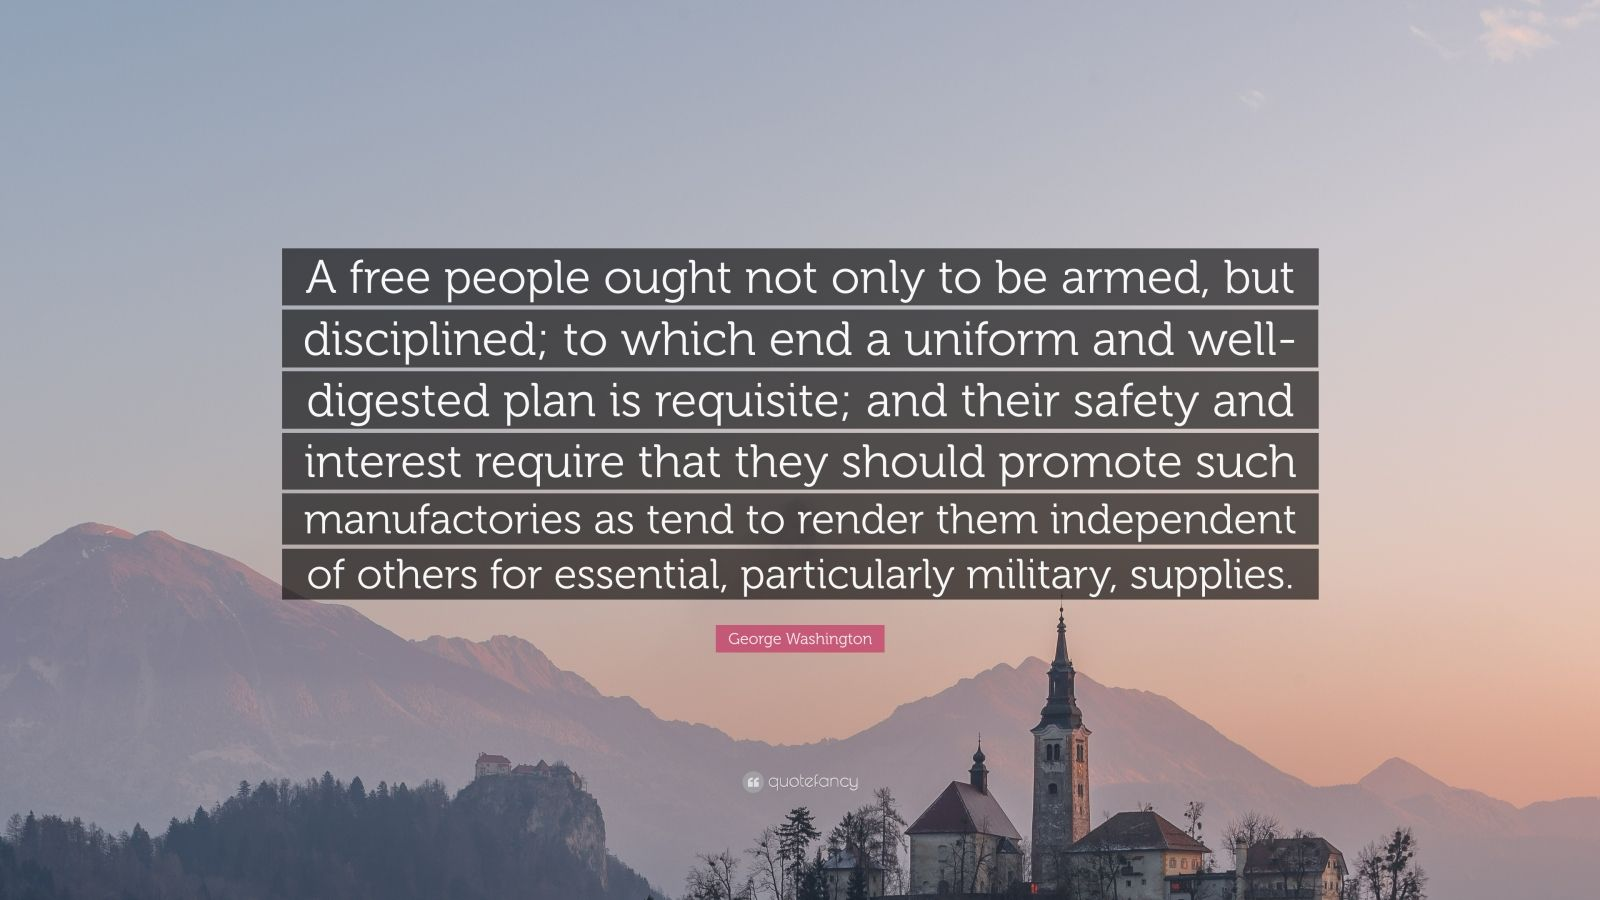 "George Washington Quote: ""A free people ought not only to be armed, but disciplined; to which end a uniform and well-digested plan is requisite; and their safety and interest require that they should promote such manufactories as tend to render them independent of others for essential, particularly military, supplies."""